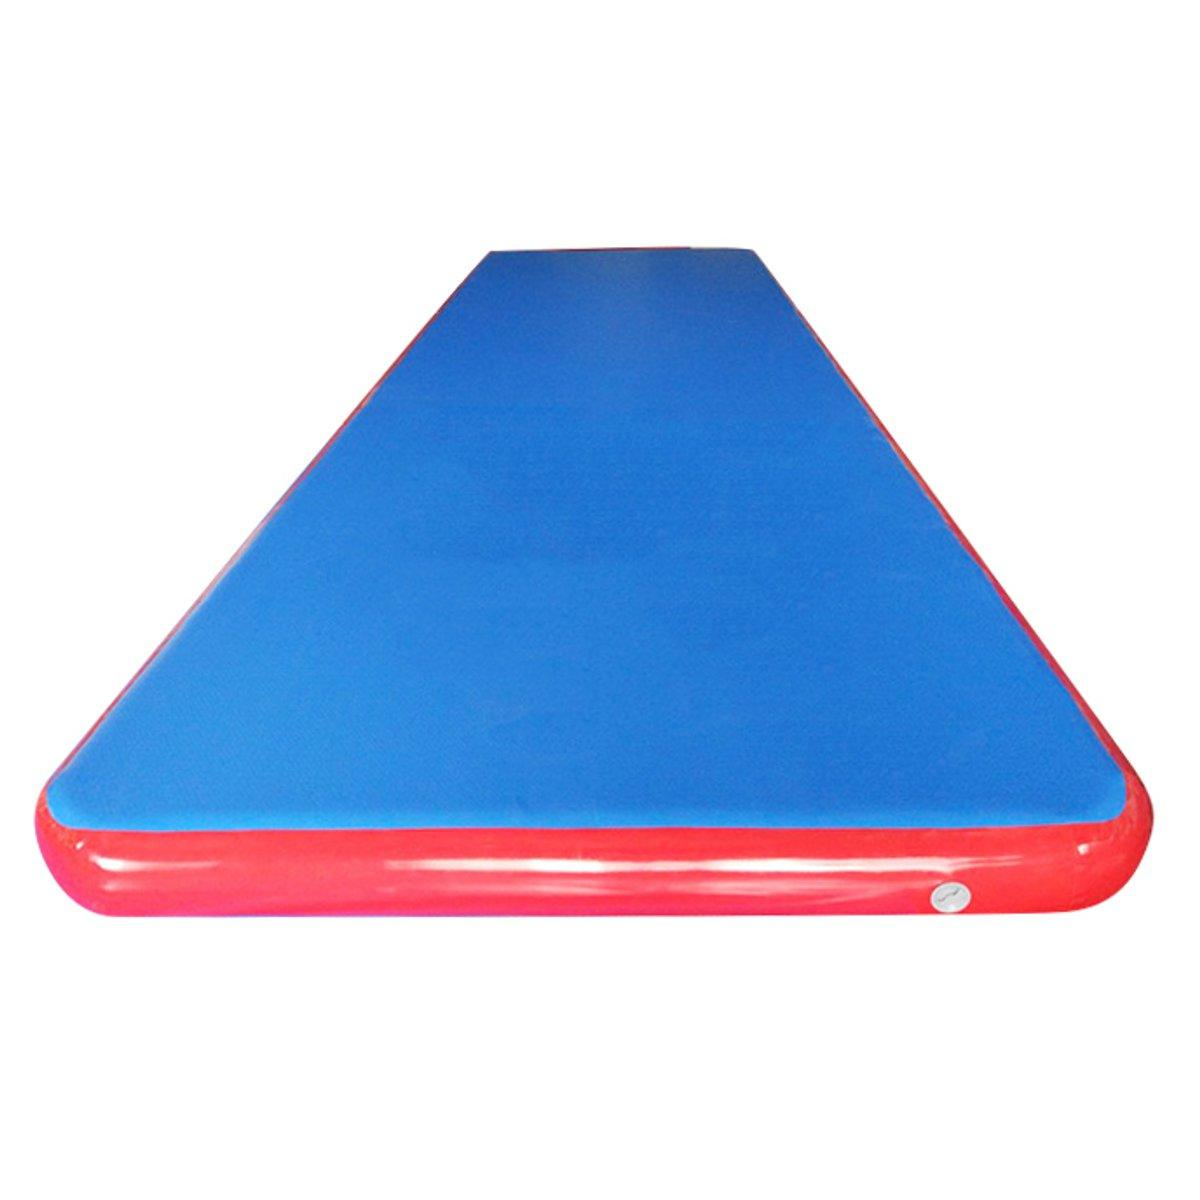 275x79x4inch Inflatable Tumbling Mat Air Track Outdoor Home Gymnastics Training Sport Protection Pad - 2